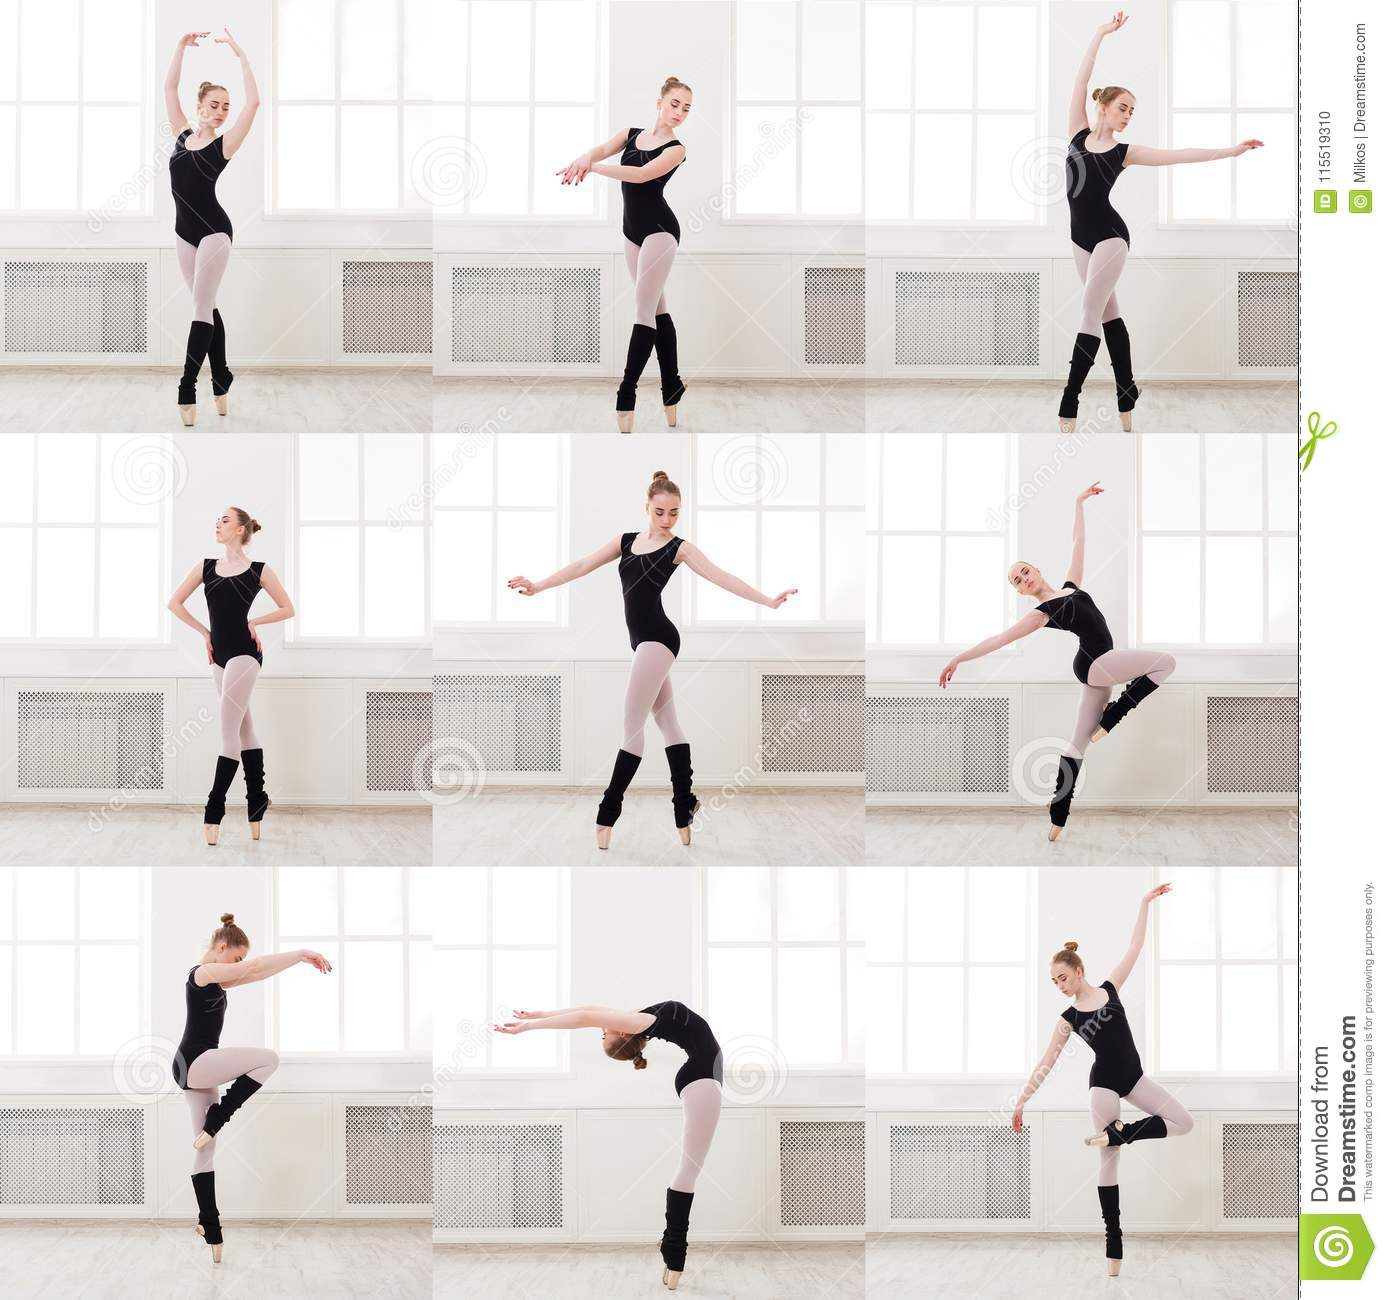 Set Of Young Ballerina Standing In Ballet Poses Stock Photo Image Of Adult Leisure 115519310